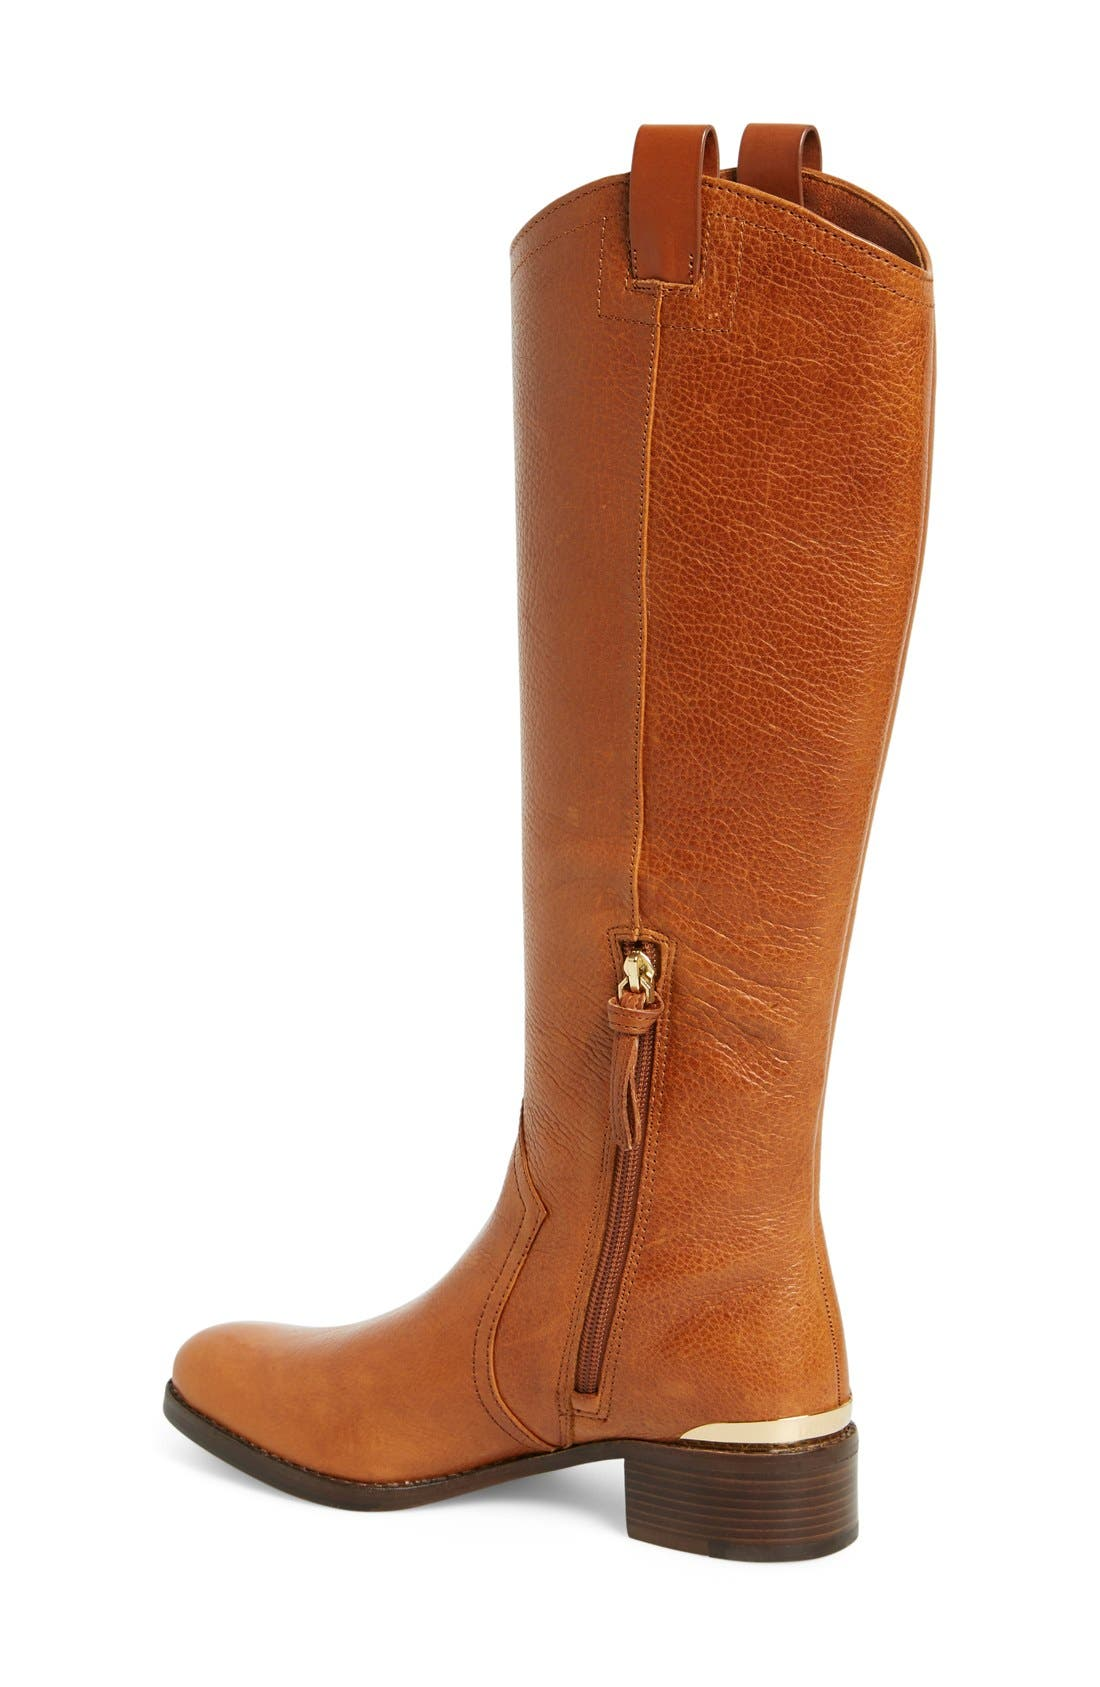 Alternate Image 2  - Louise et Cie 'Zada' Knee High Leather Riding Boot (Women) (Wide Calf) (Nordstrom Exclusive)